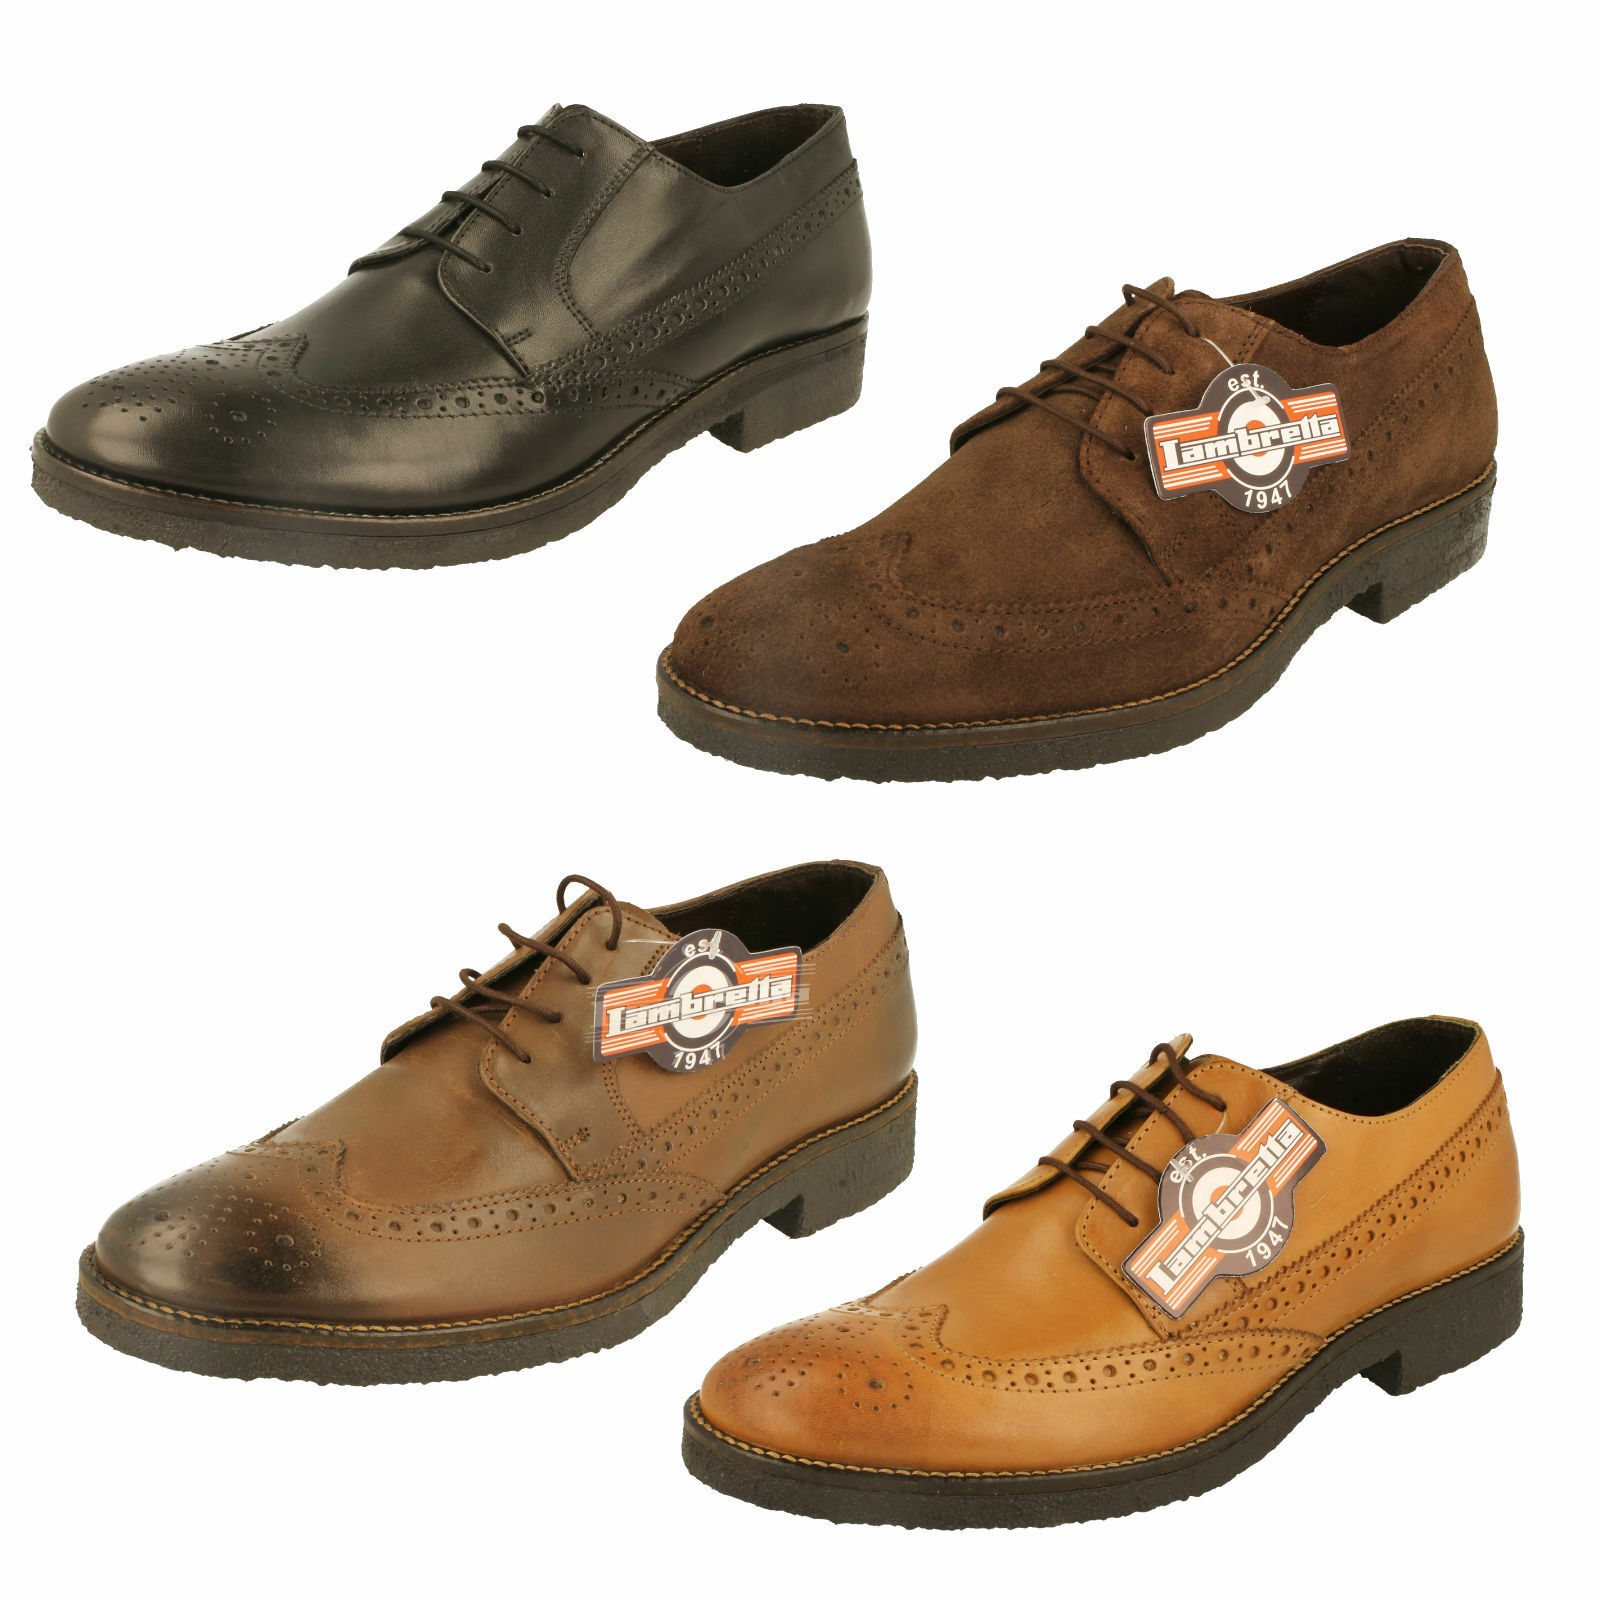 Mr/Ms Mens M-82 Lambretta Brogue Shoes - M-82 Mens High quality and cheap At a lower price Explosive good goods 30dbf5